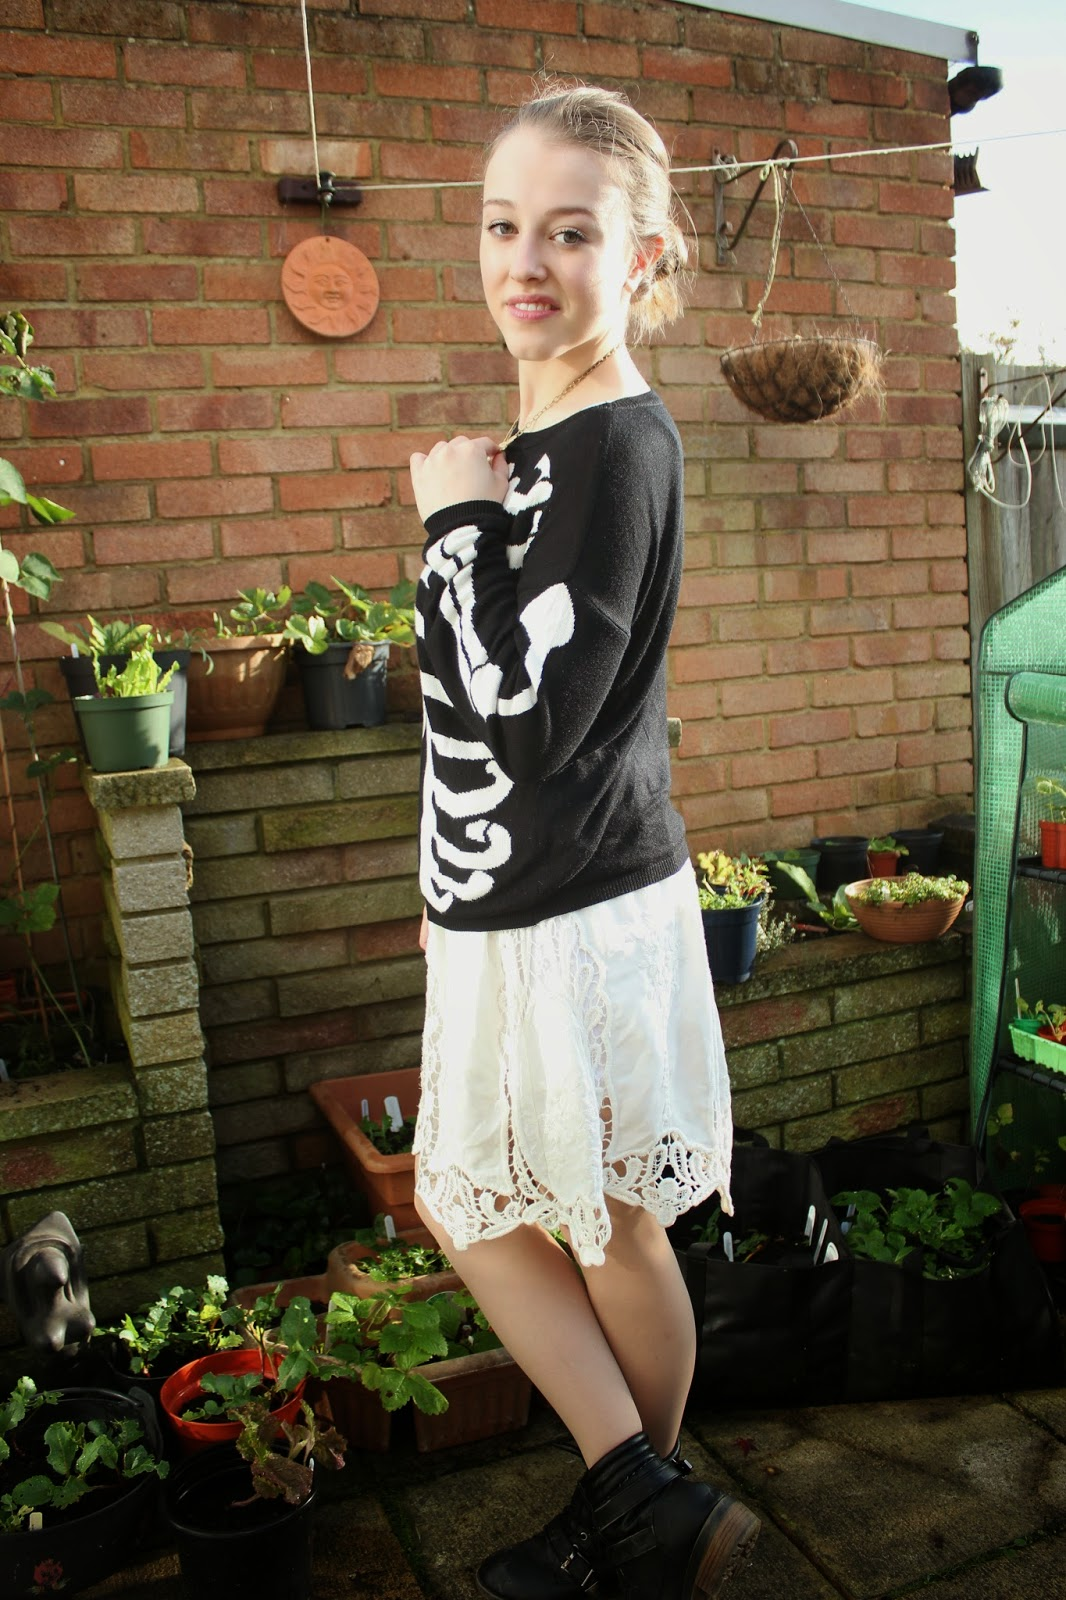 OOTD-blogger-fashion-outfit-inspiration-oasap-jumper-skeleton-lace-skirt-ukele-boots-new-look-necklace-topshop-style-clothes